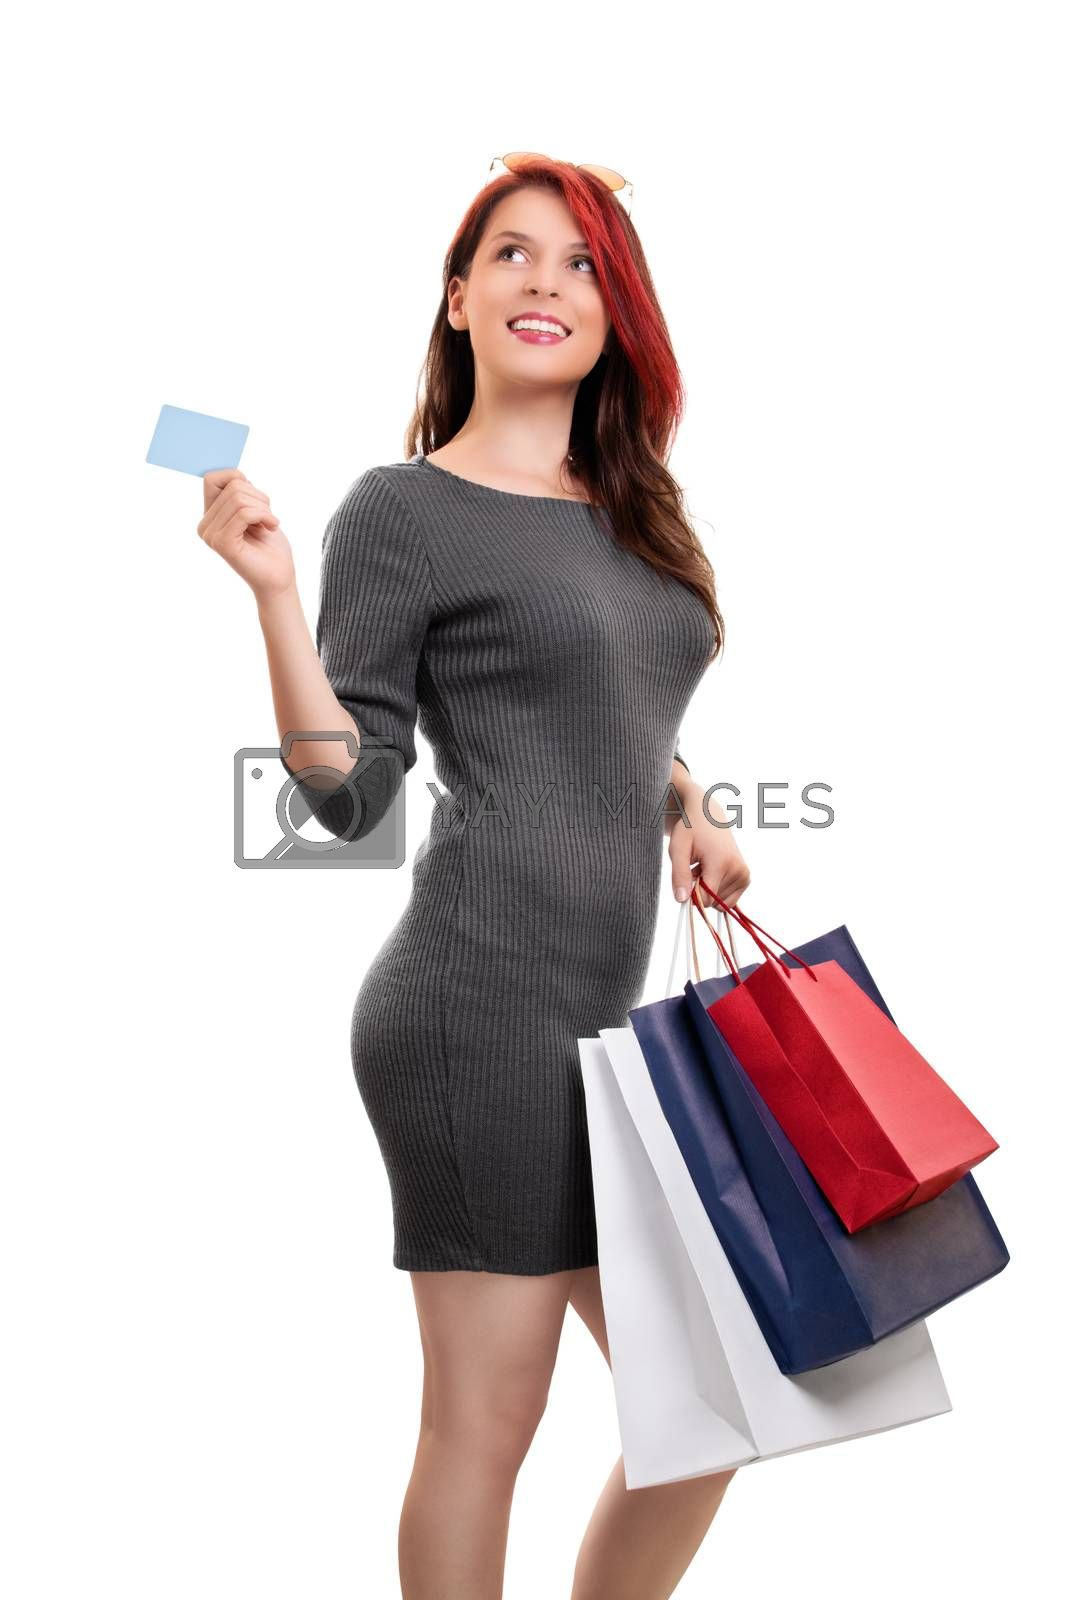 Beautiful young girl in a dress with sunglasses, holing shopping bags and a blank card, isolated on white background. Shopping concept, copy space.